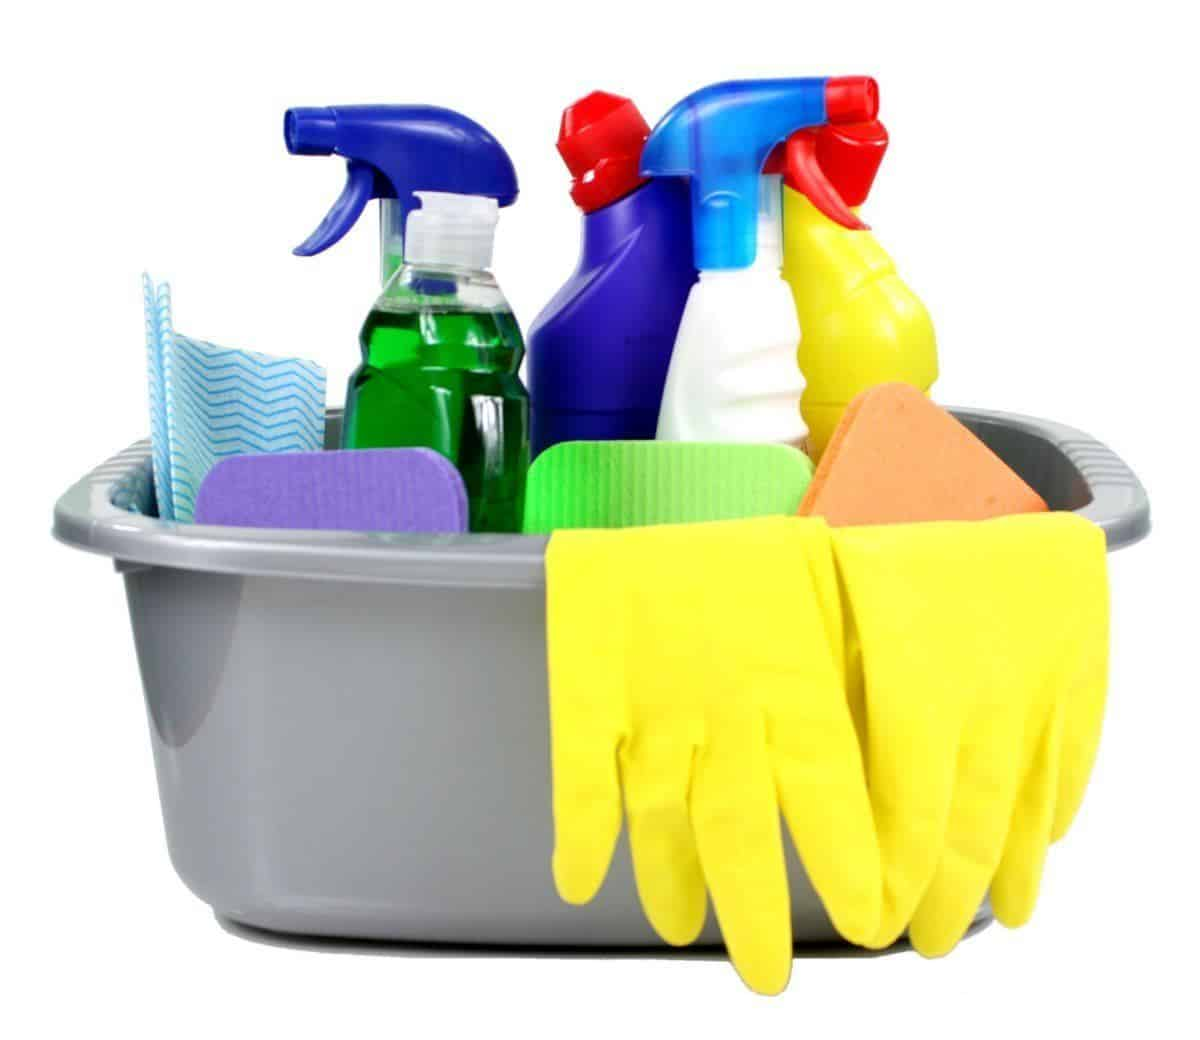 Cleaning supplies used to remove urine odor and stains